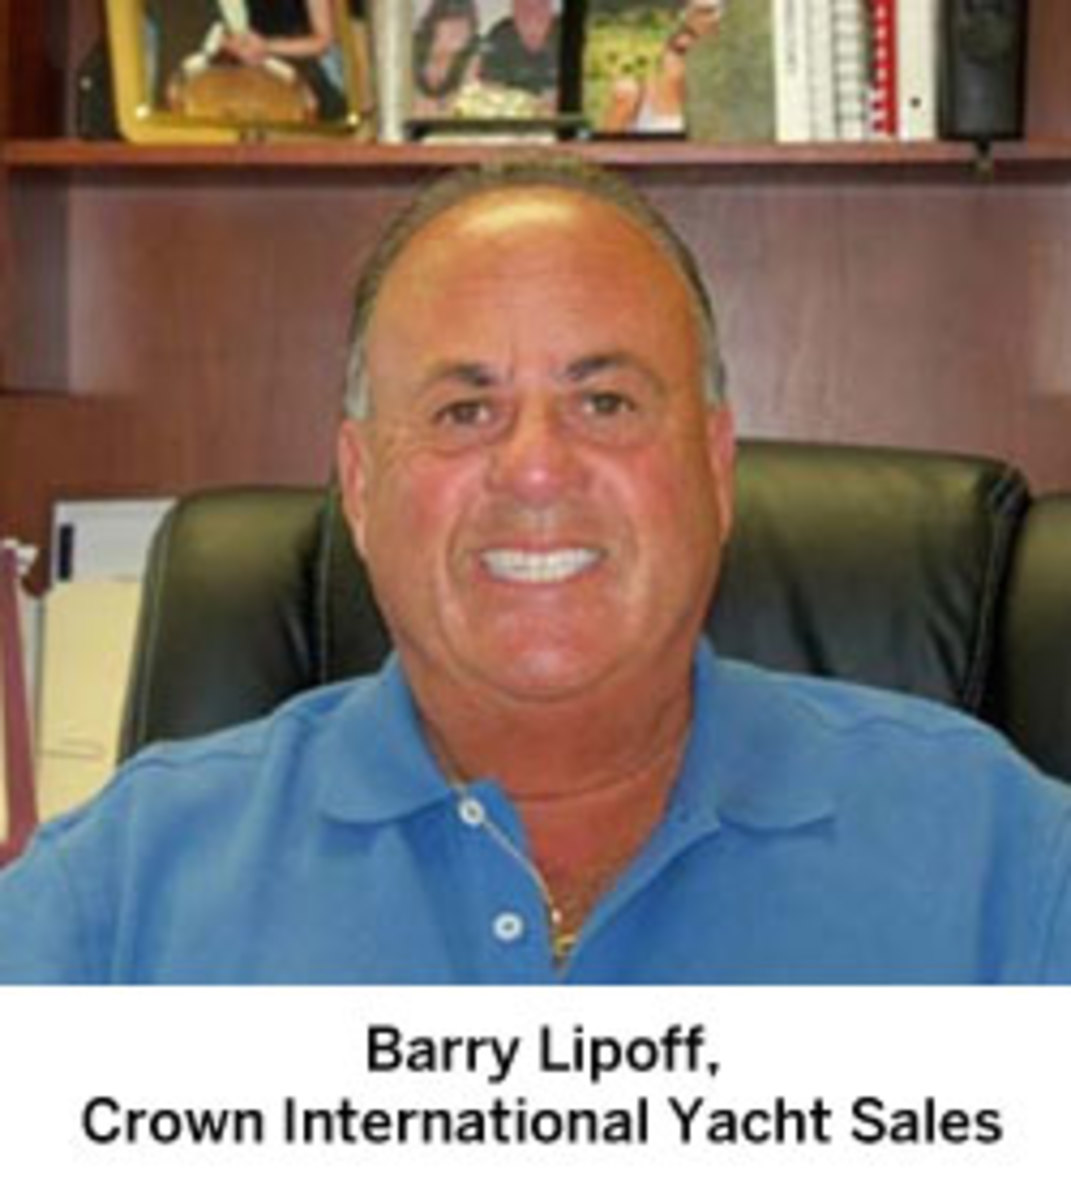 Barry Lipoff, Crown International Yacht Sales